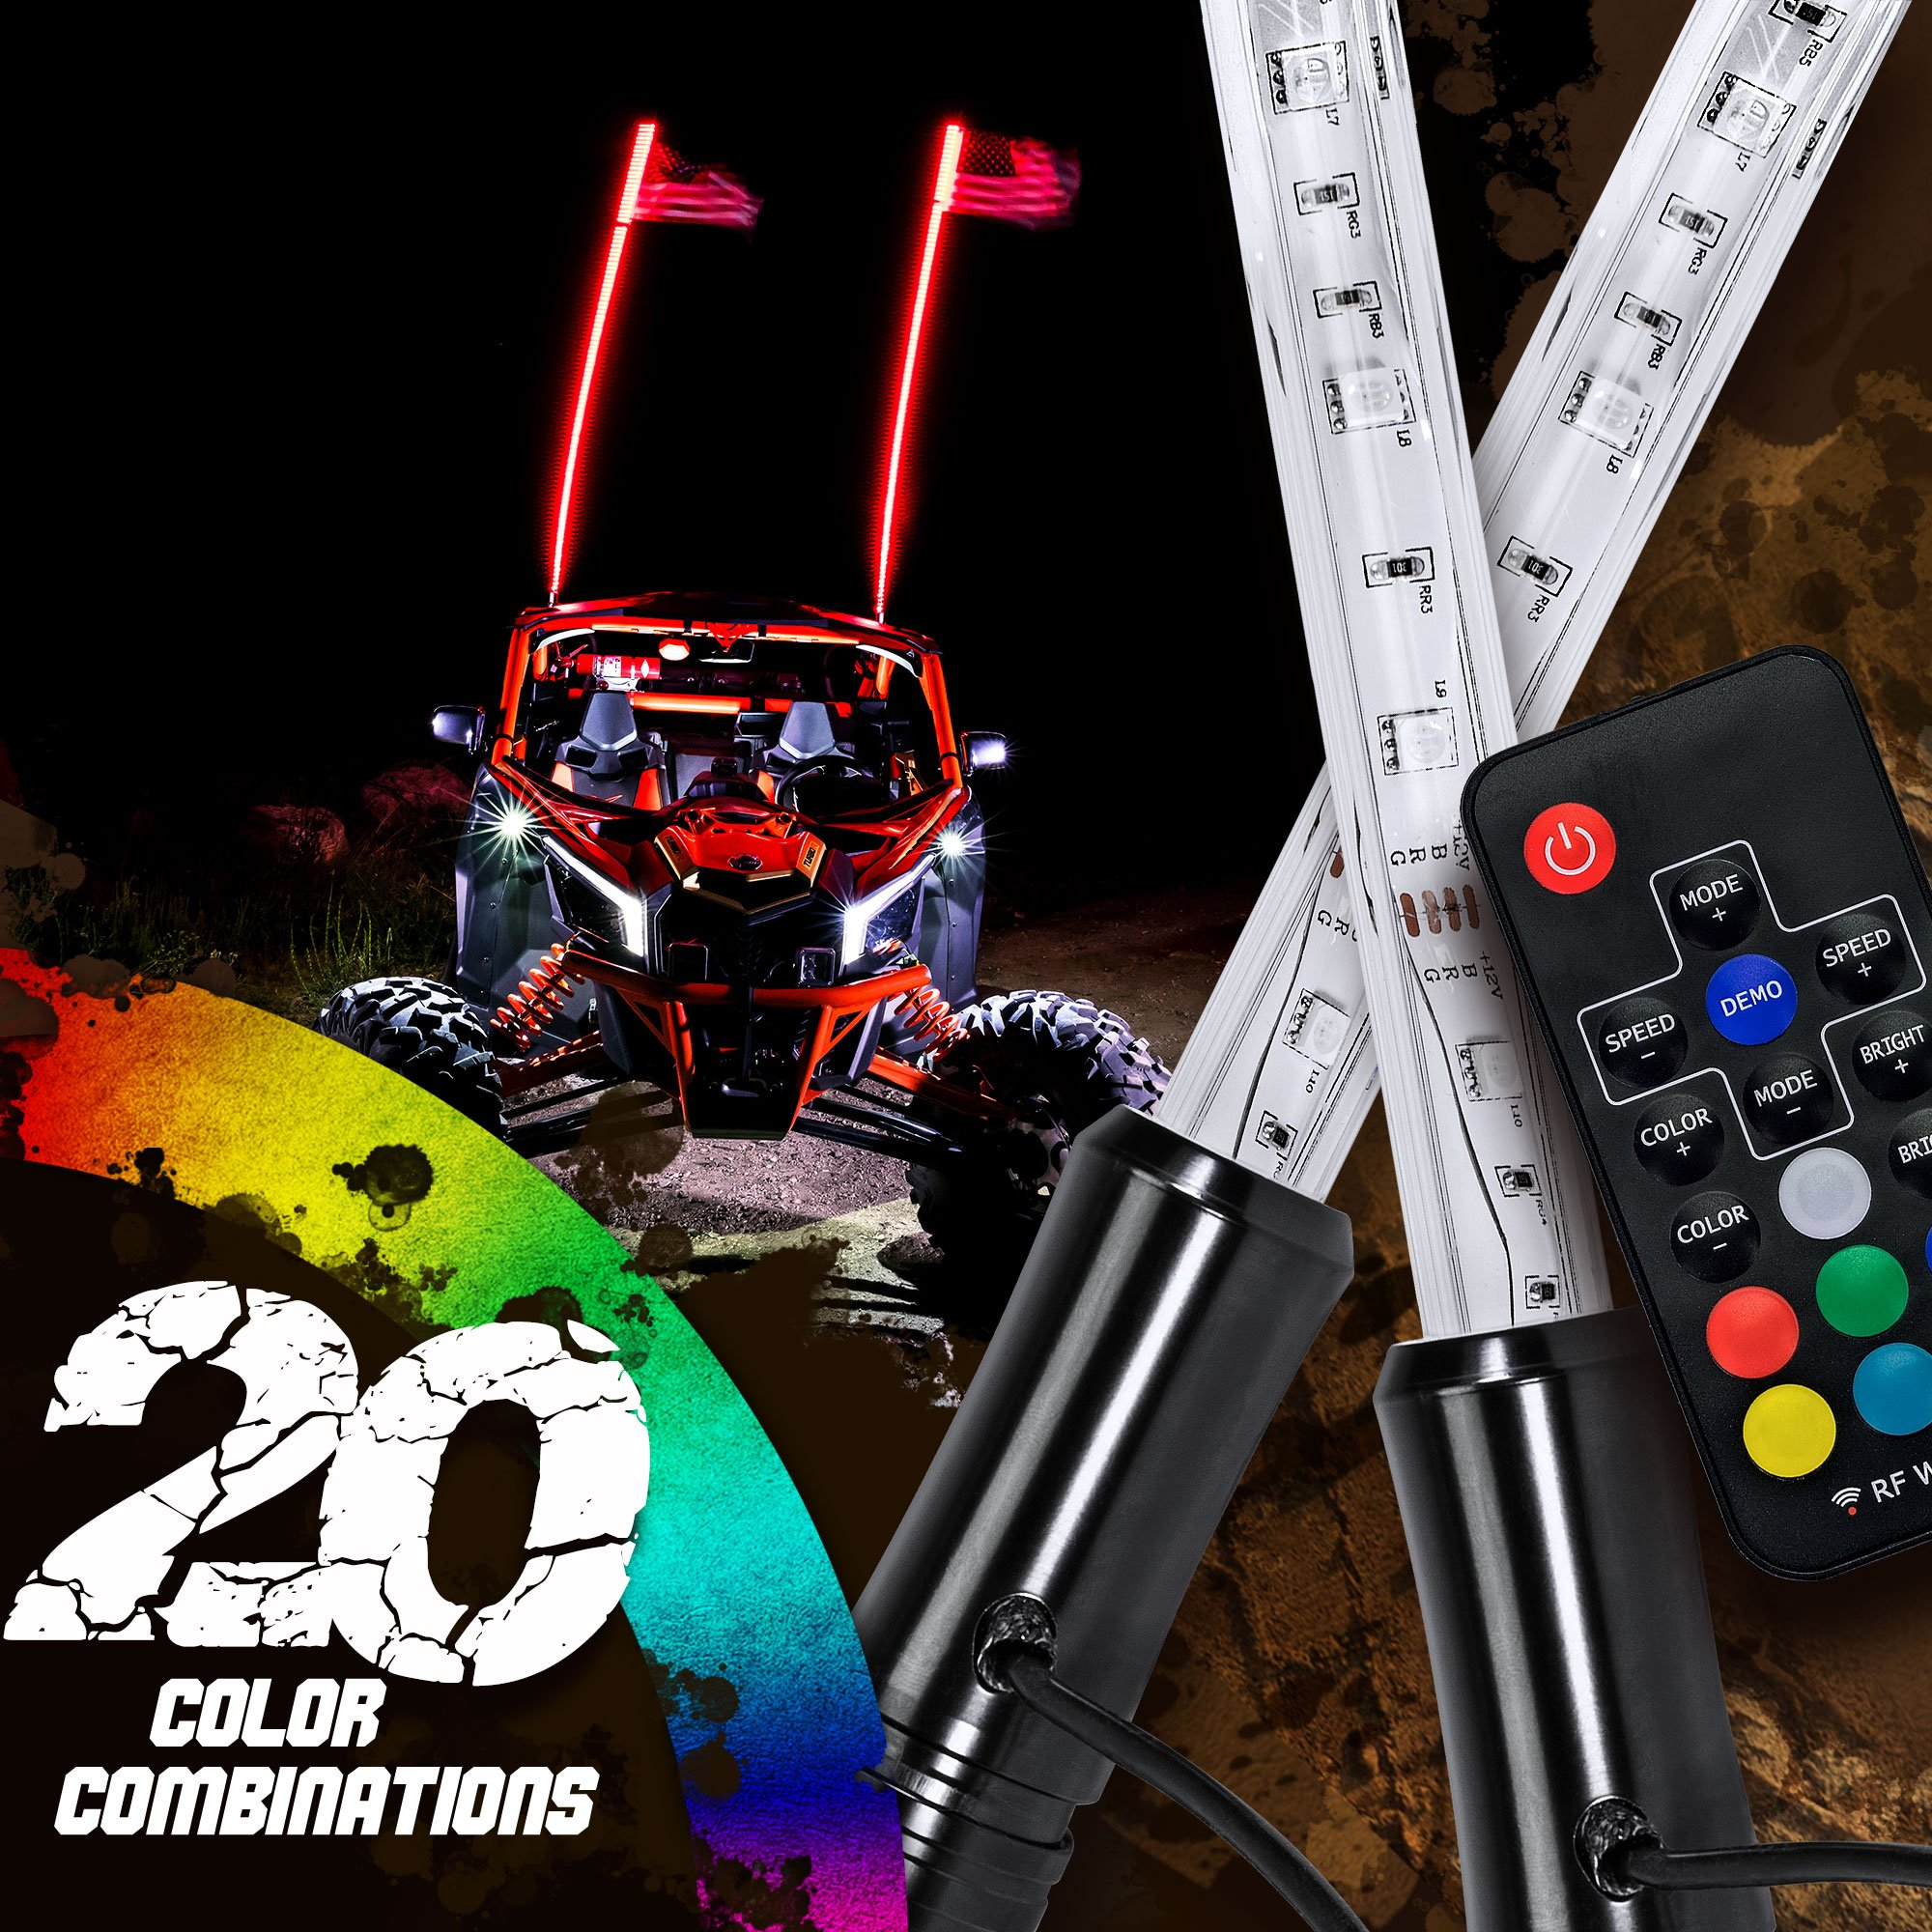 Accessories for All-Terrain Off Road ATV Polaris RZR 4 Wheeler Multi-Color Light Patterns Shatterproof Waterproof Build OPT7 Aura 4ft LED Whip Single w//Quick Release Shock Spring Remote and Flag 64